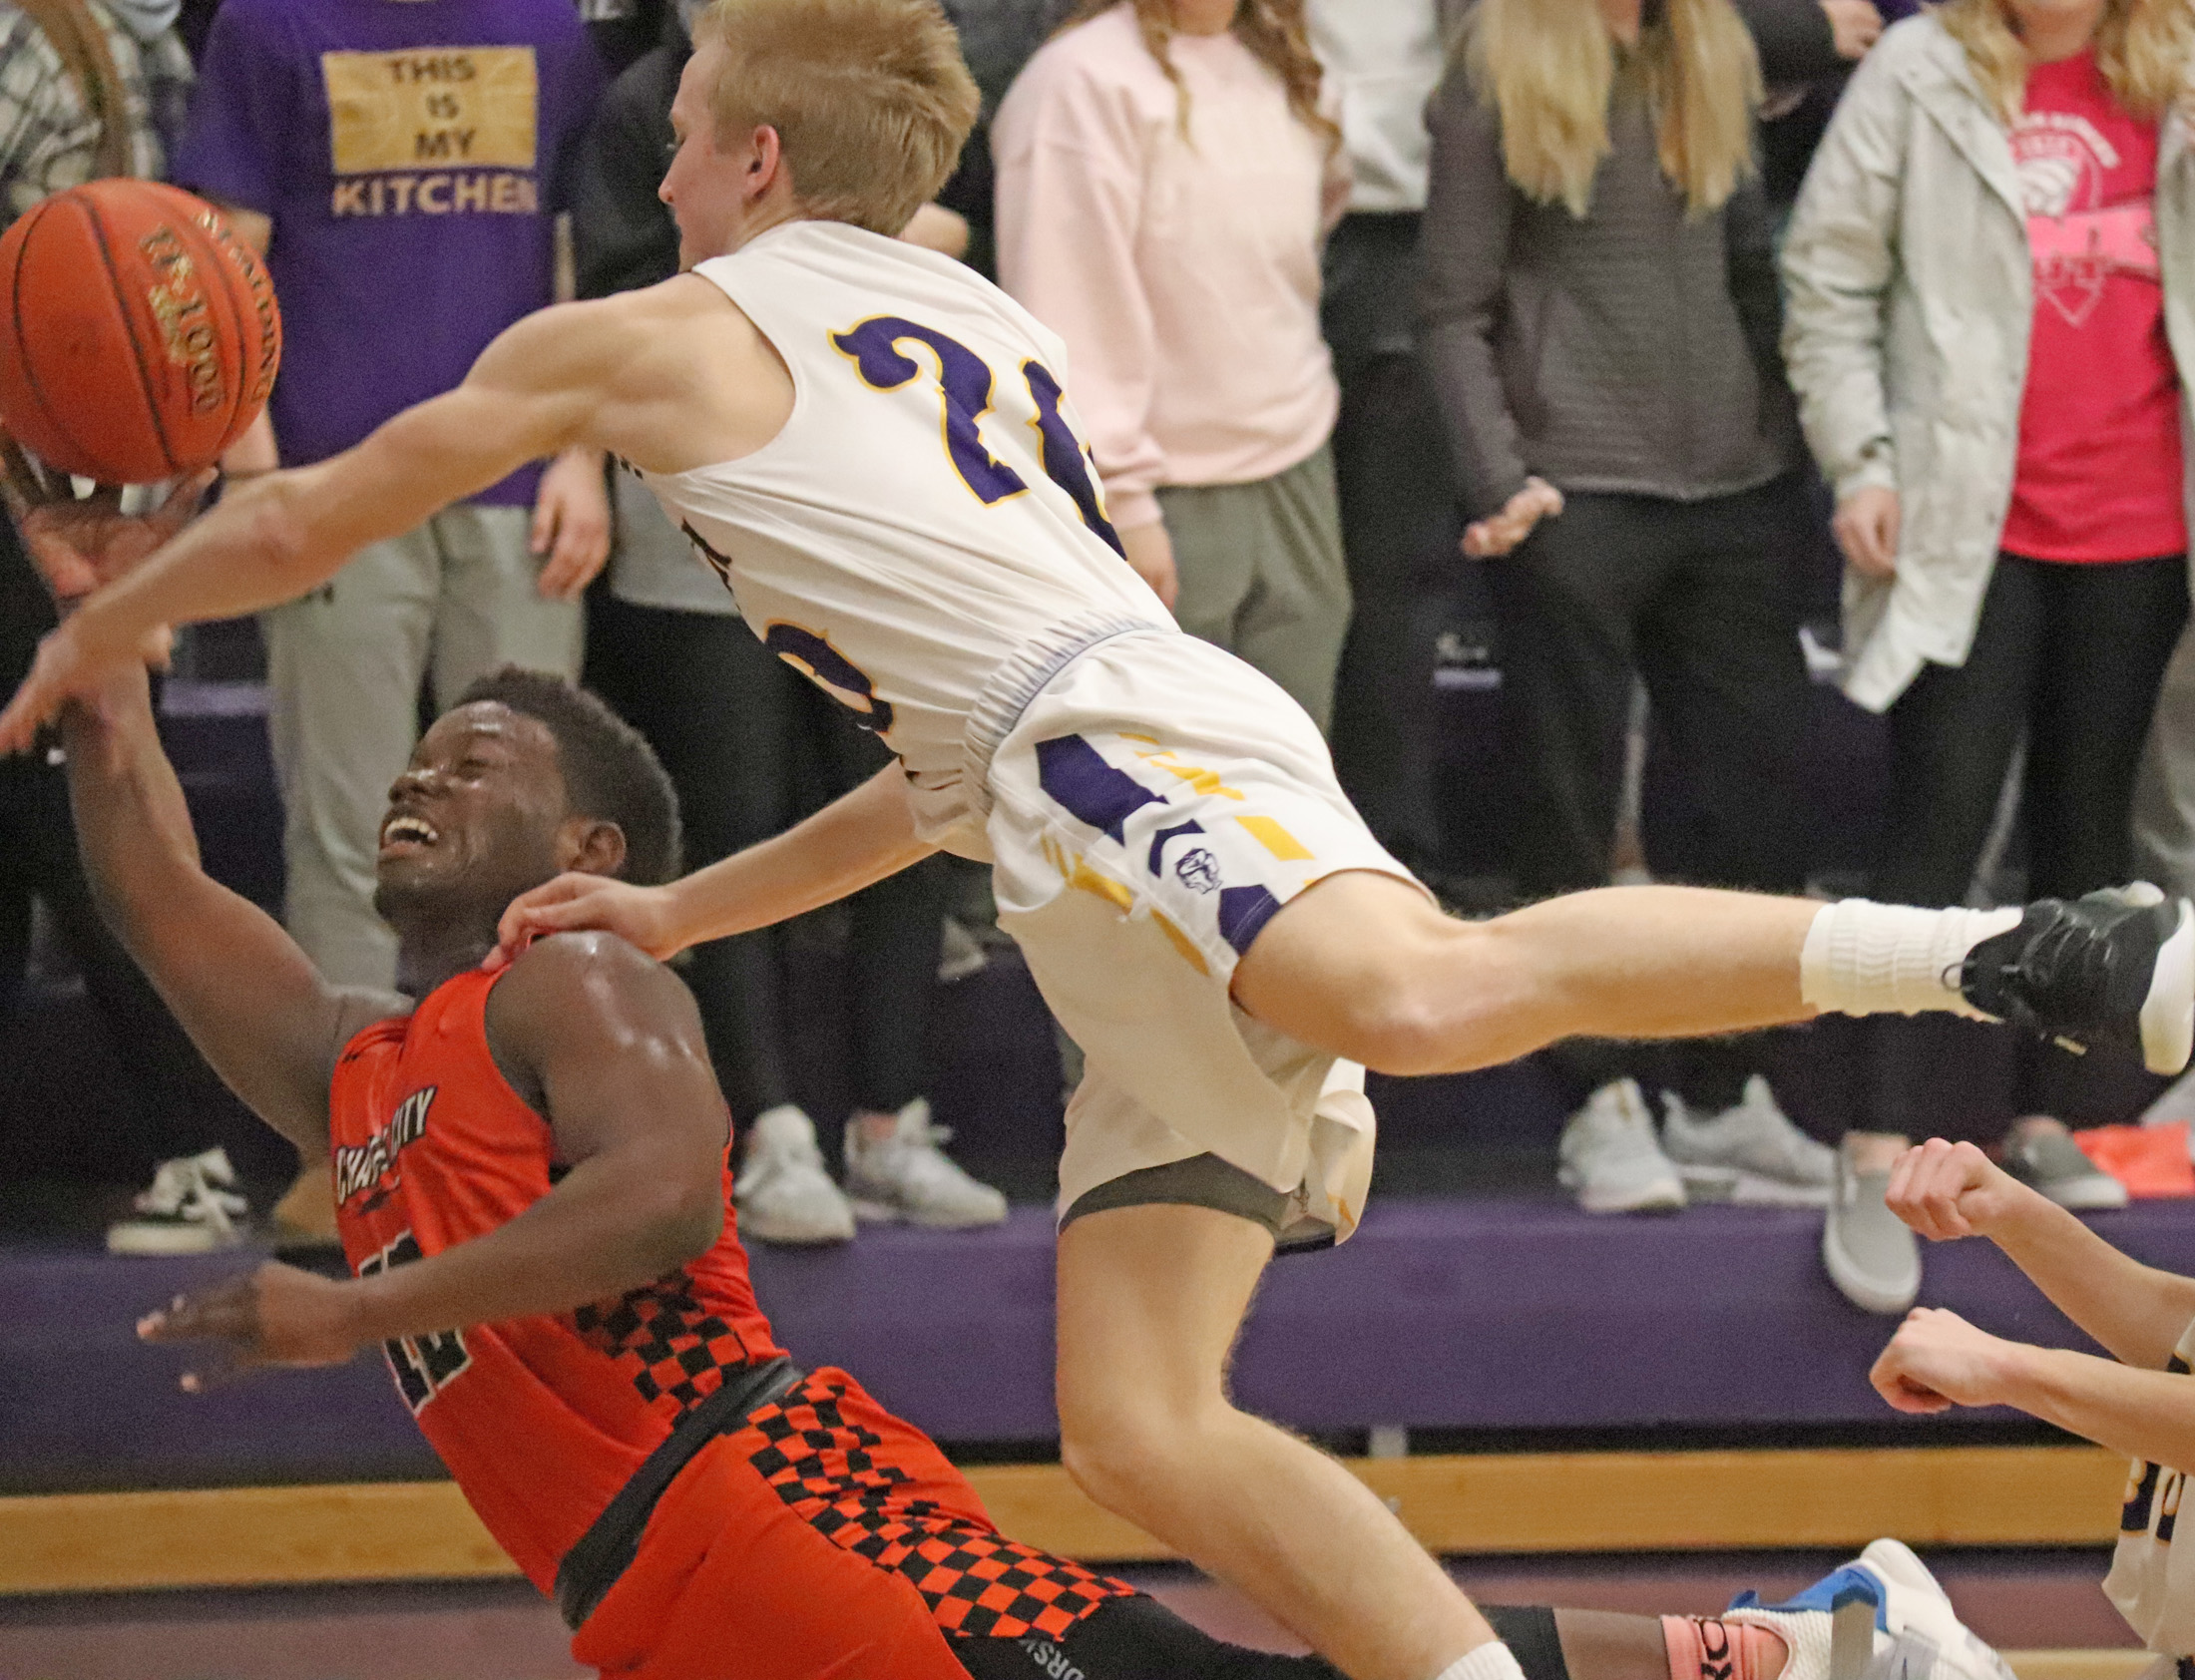 Comet girls reach season-high in points, Comet boys stay atop NEIC with wins over Huskies